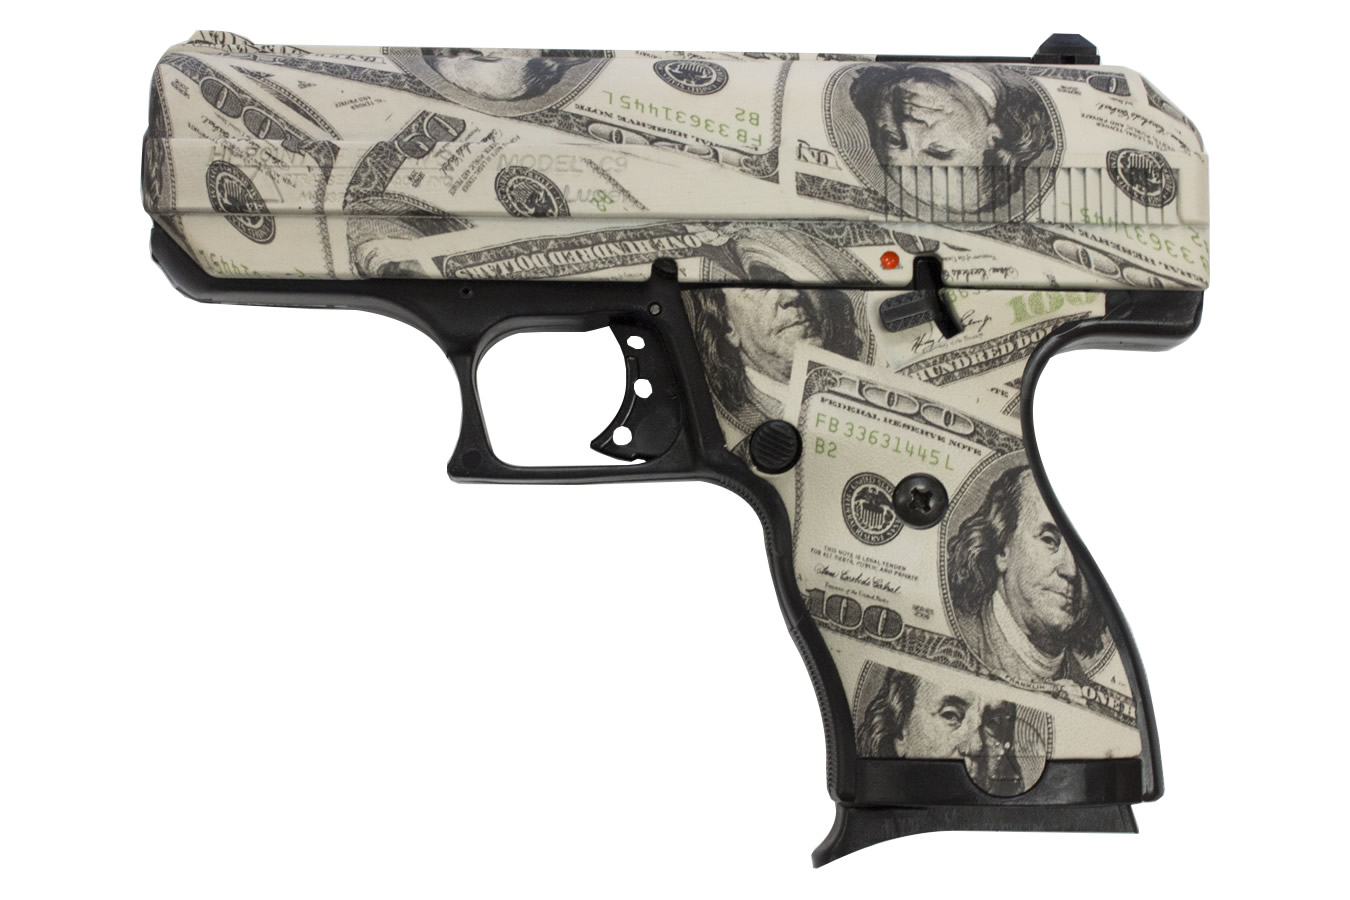 C9 9MM WITH HUNDRED DOLLAR BILL FINISH